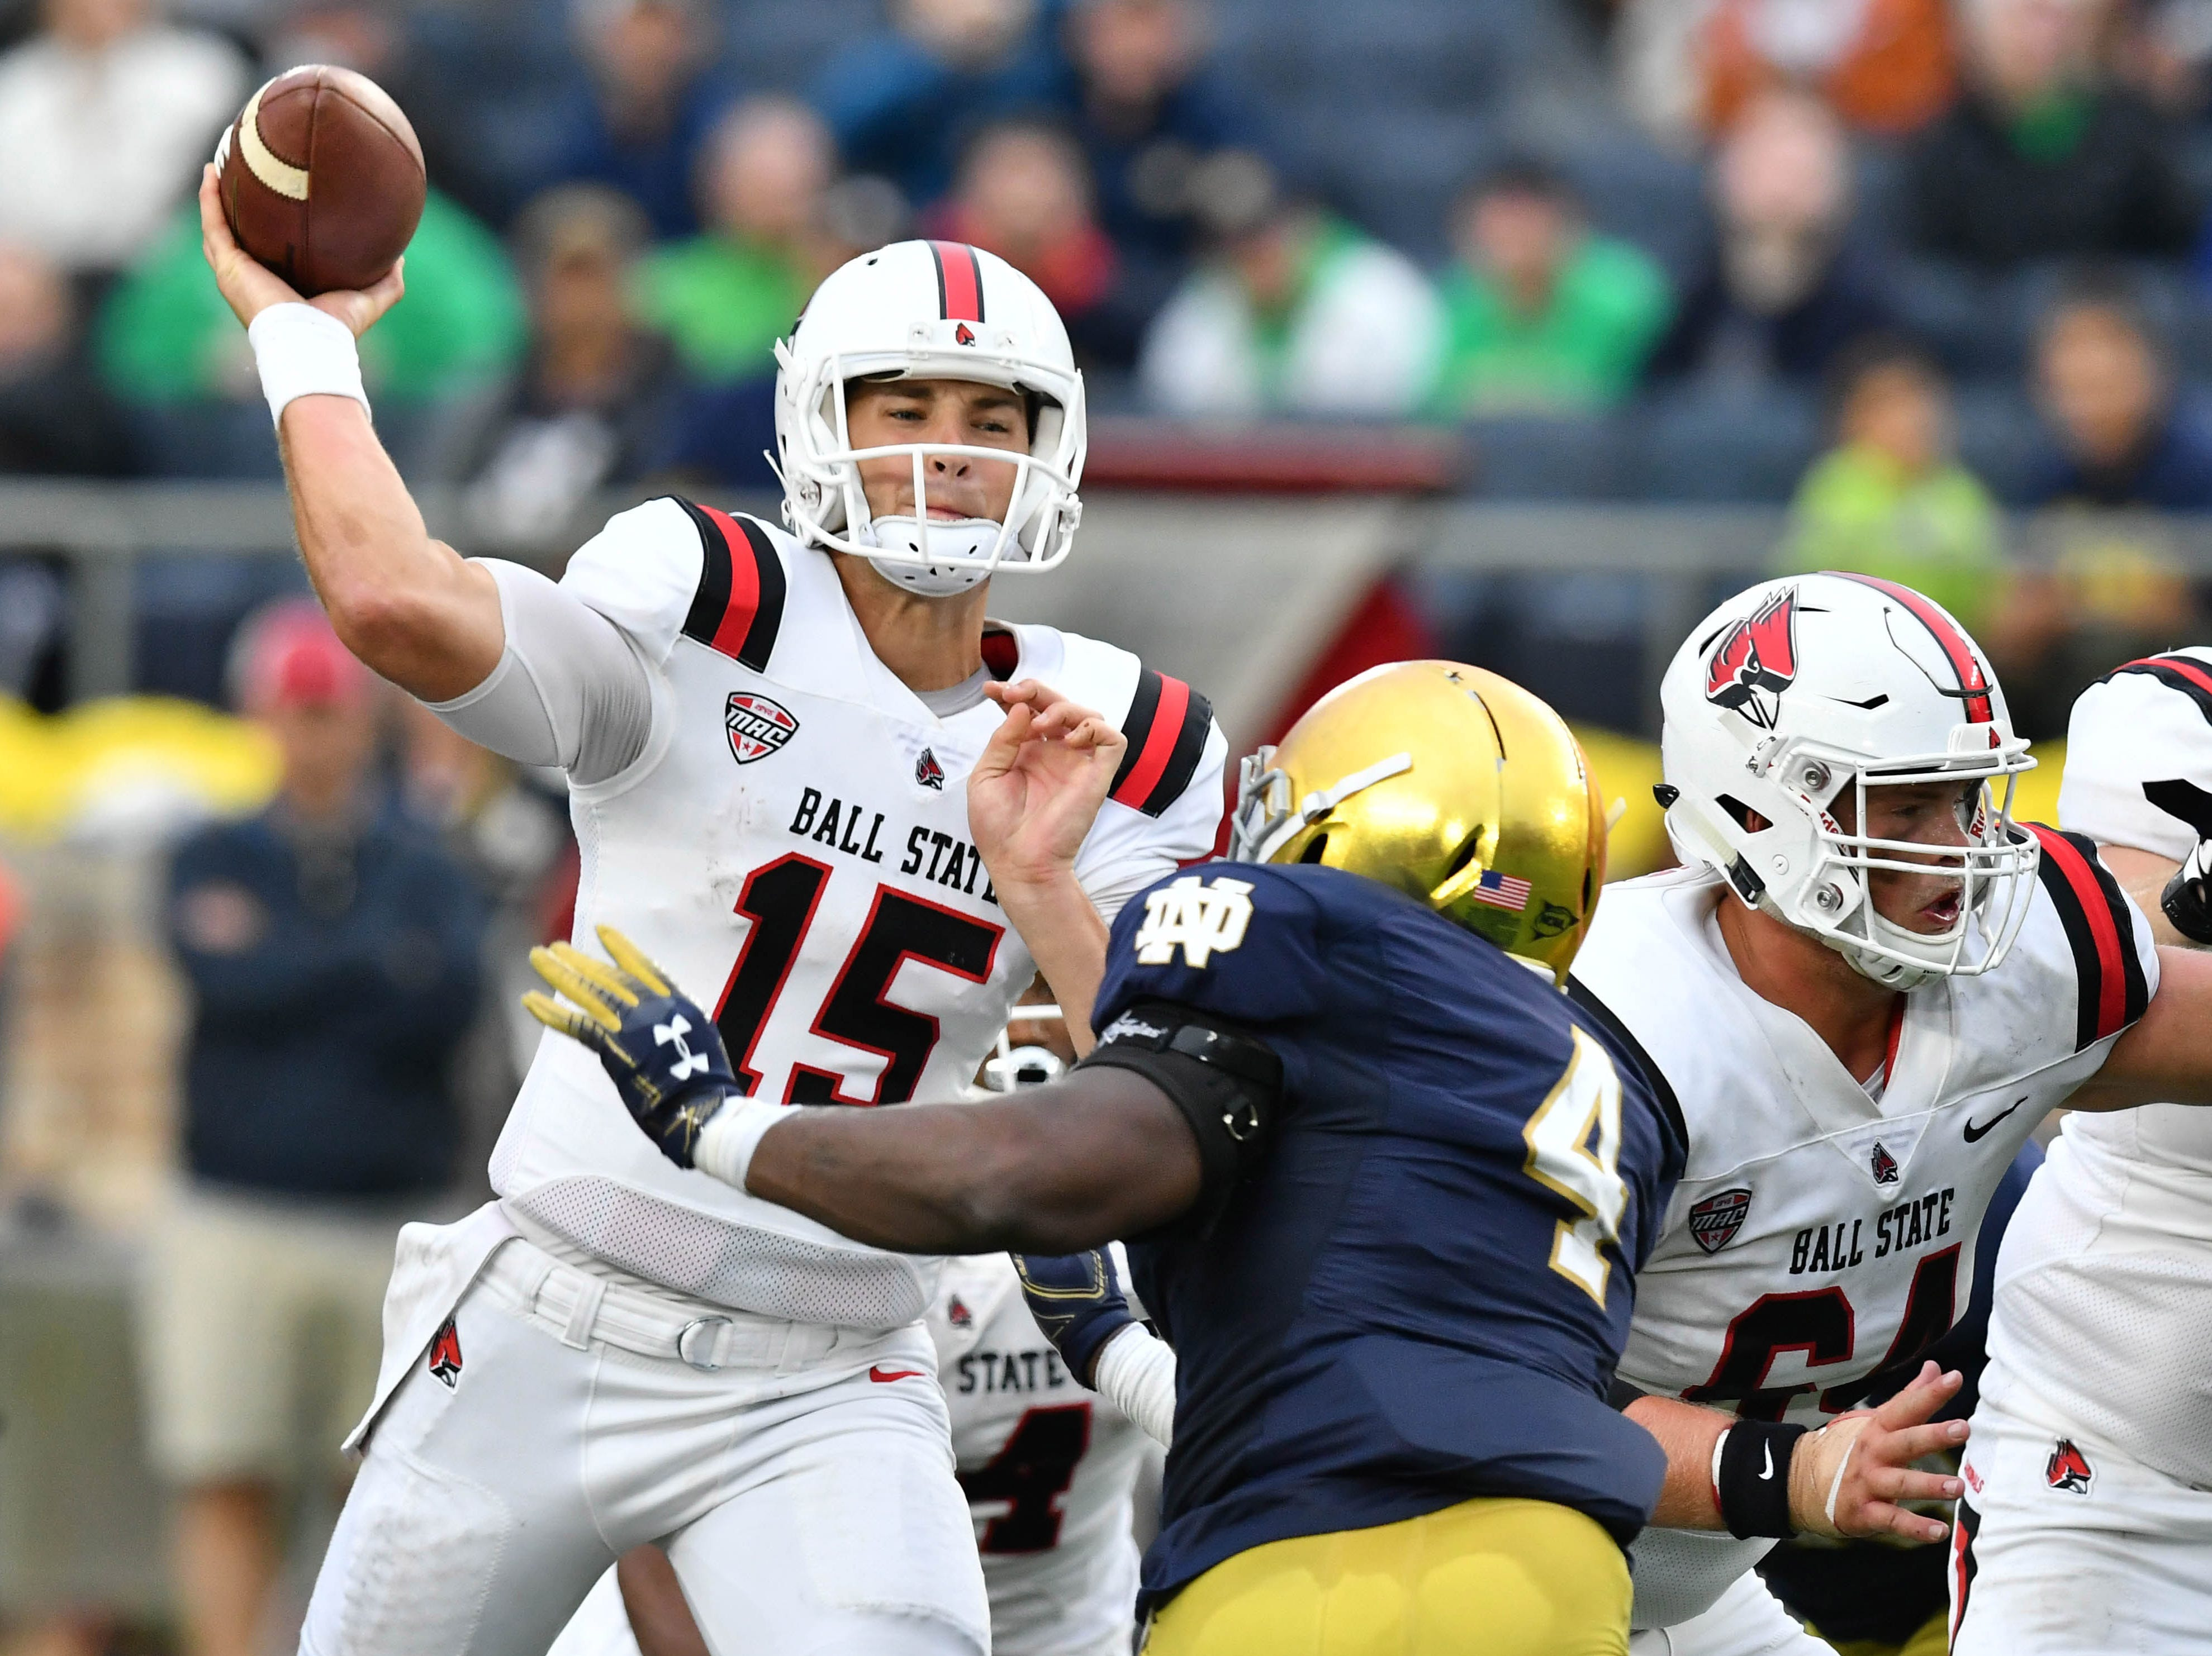 Vanderbilt football: Will Ball State transfer join Deuce Wallace in crowded 2019 QB competition?